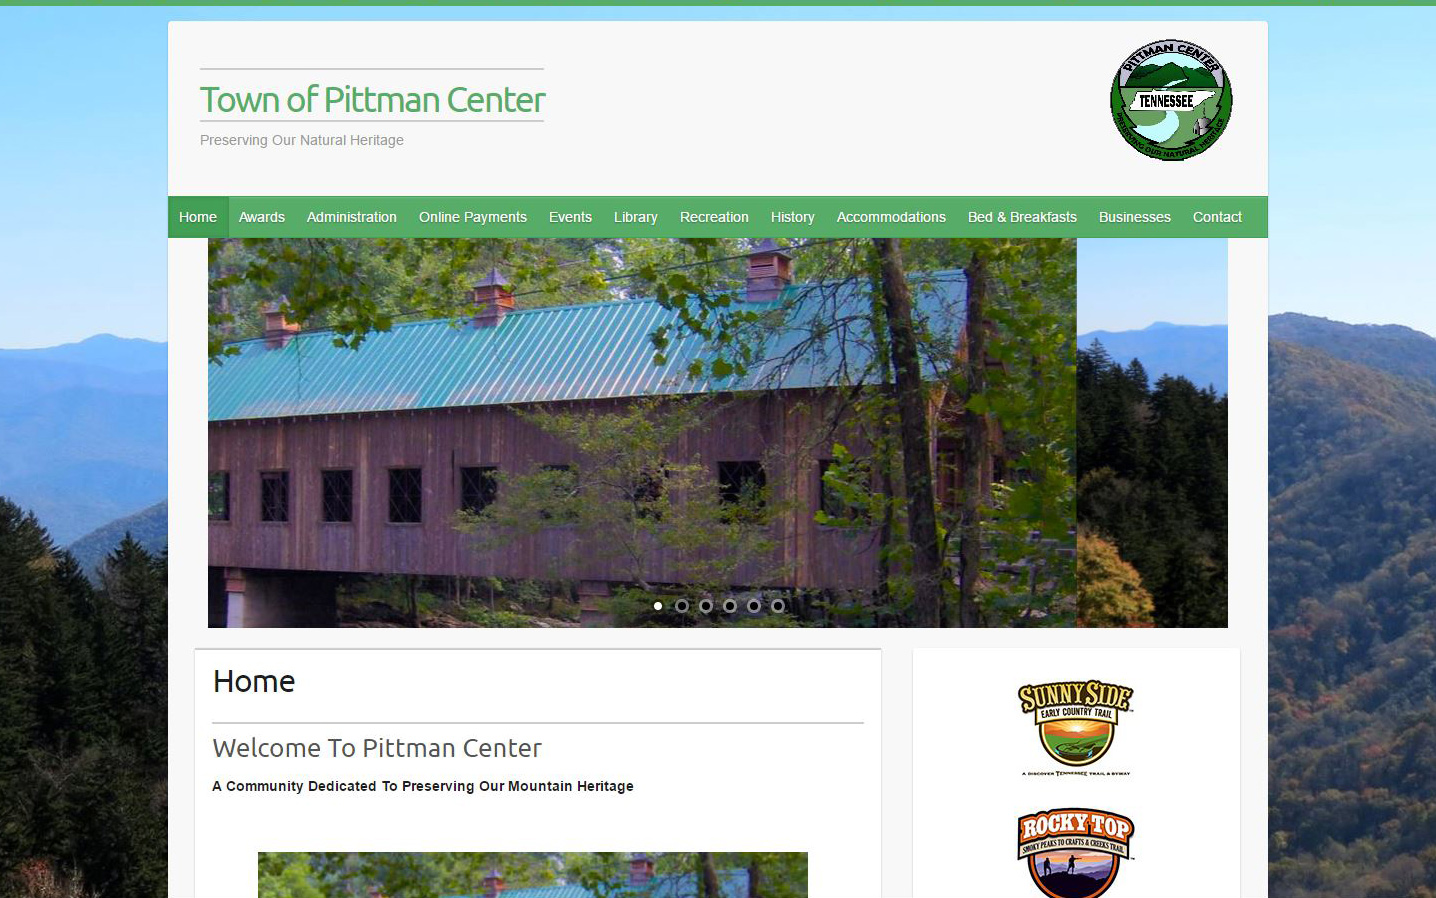 Town of Pittman Center Website